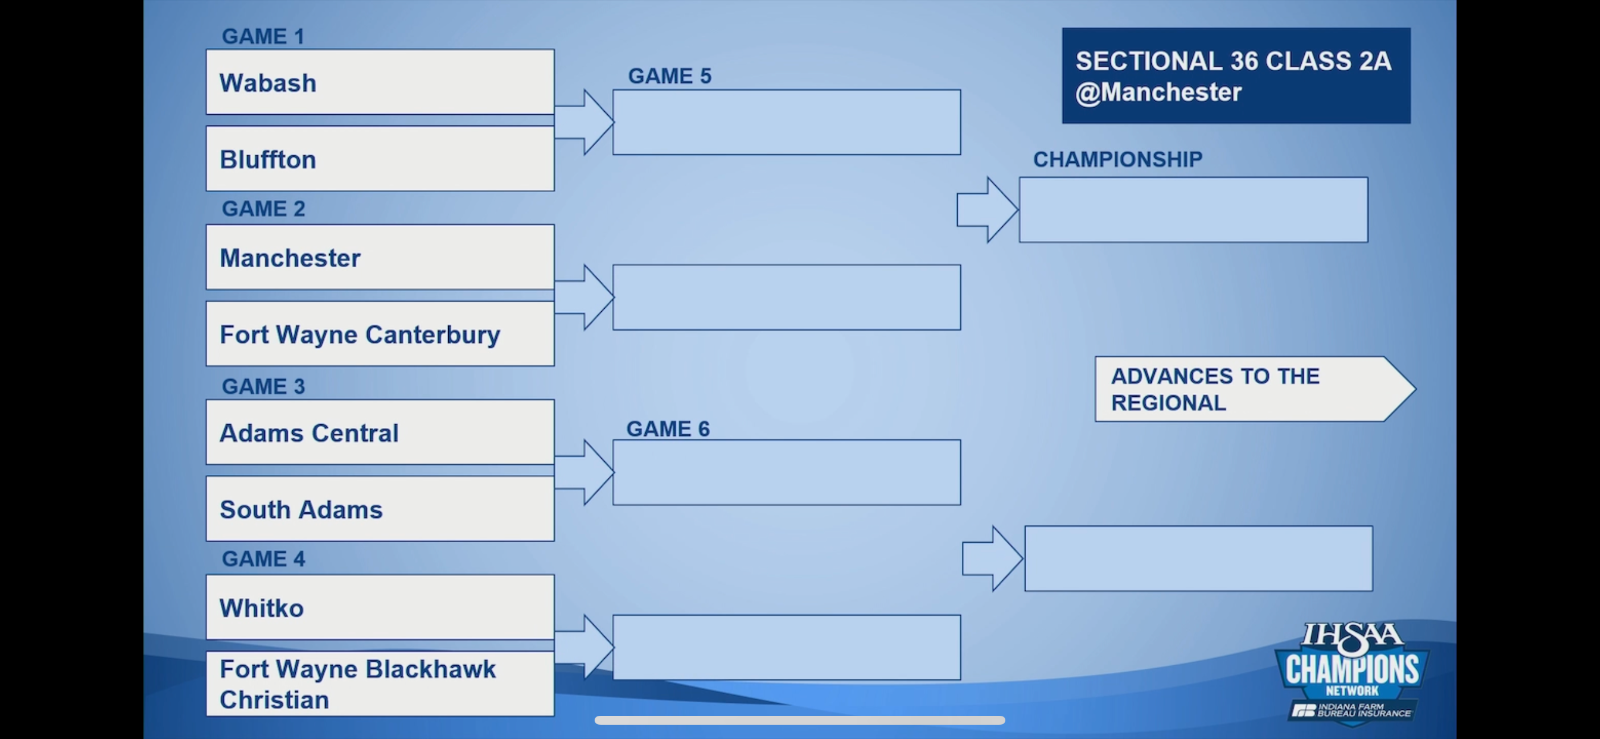 Wabash Boys Basketball Sectional